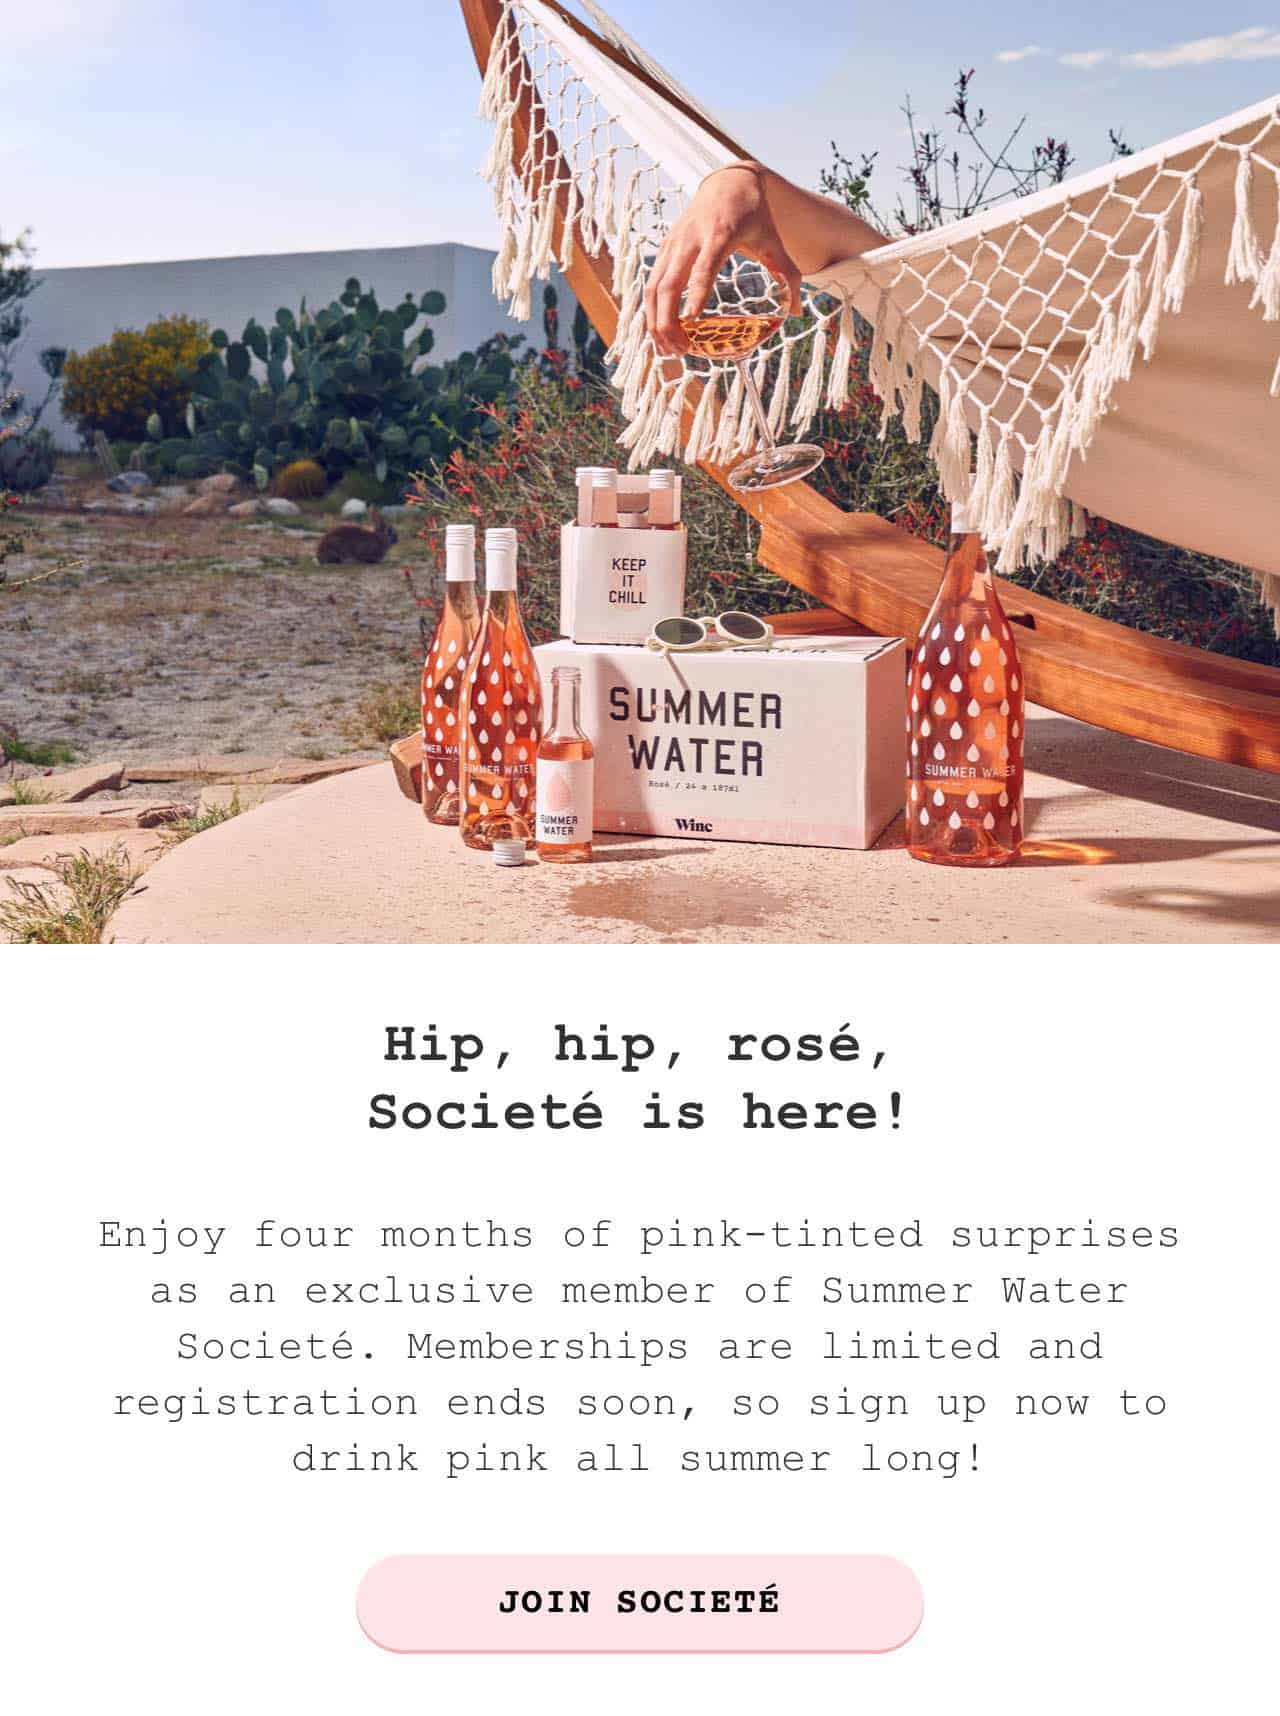 New Box from Winc – Summer Water Societe Subscription Available Now